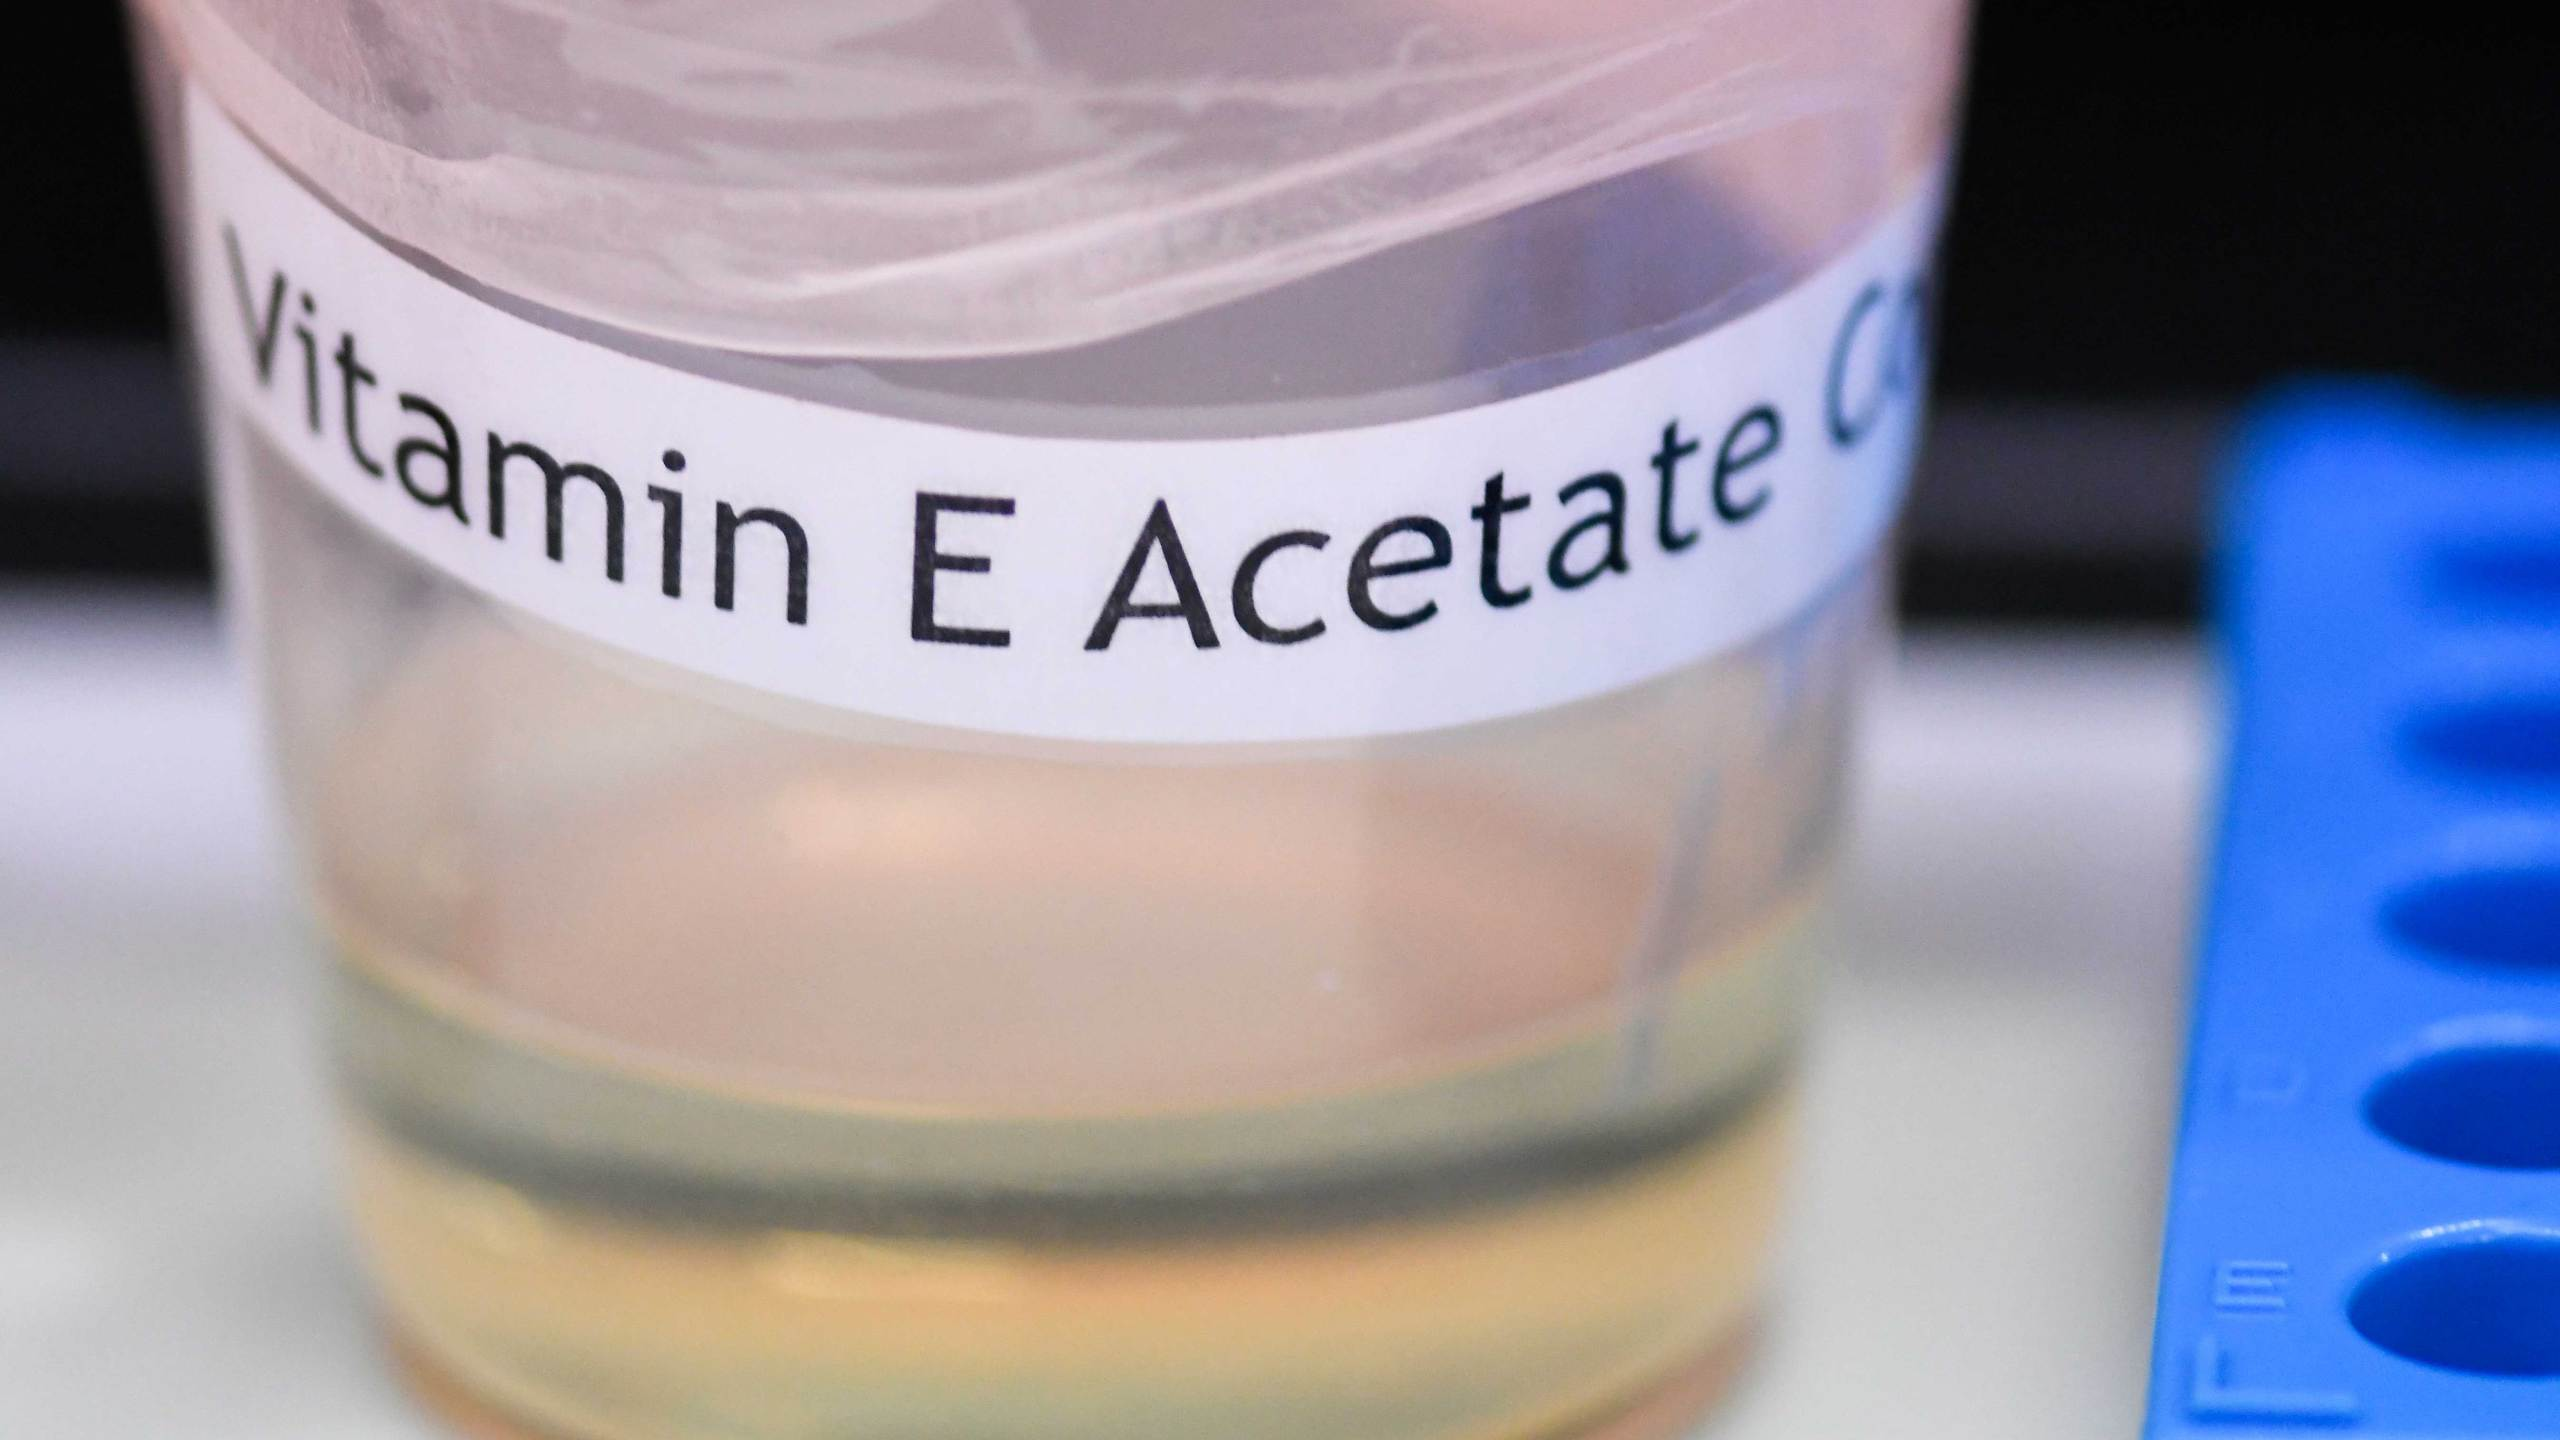 This Monday, Nov. 4, 2019 photo shows a vitamin E acetate sample during a tour of the Medical Marijuana Laboratory of Organic and Analytical Chemistry at the Wadsworth Center in Albany, N.Y. On Friday, Nov. 8, 2019, the Centers for Disease Control and Prevention in Atlanta said fluid extracted from 29 lung injury patients who vaped contained the chemical compound in all of them.